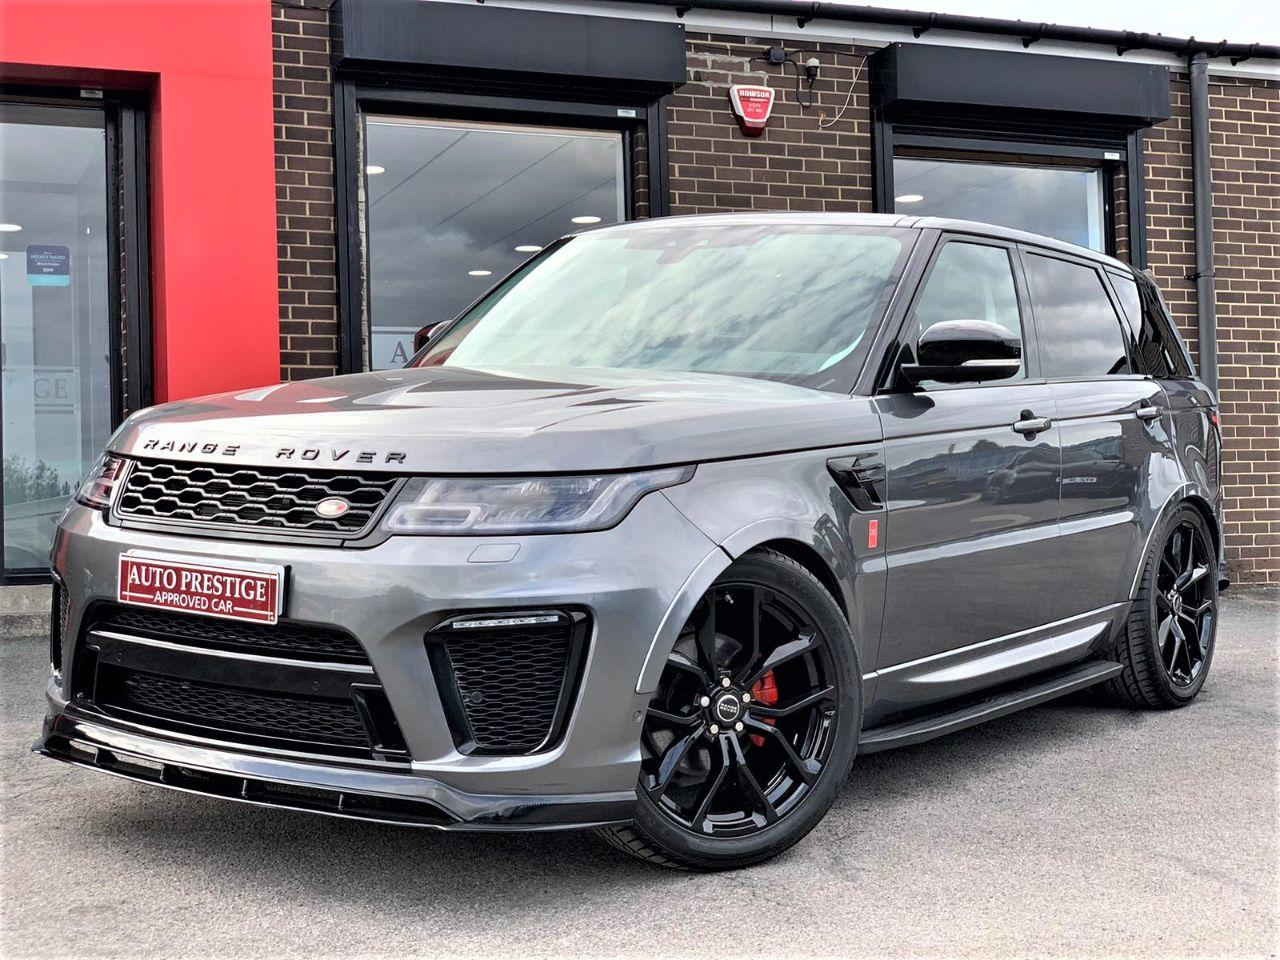 Land Rover Range Rover Sport 3.0 SDV6 HSE Dynamic 5dr Auto 7 SEATER PAN ROOF SVRR EDITION 2 OF 3 Estate Diesel Grey at Autoprestige Bradford